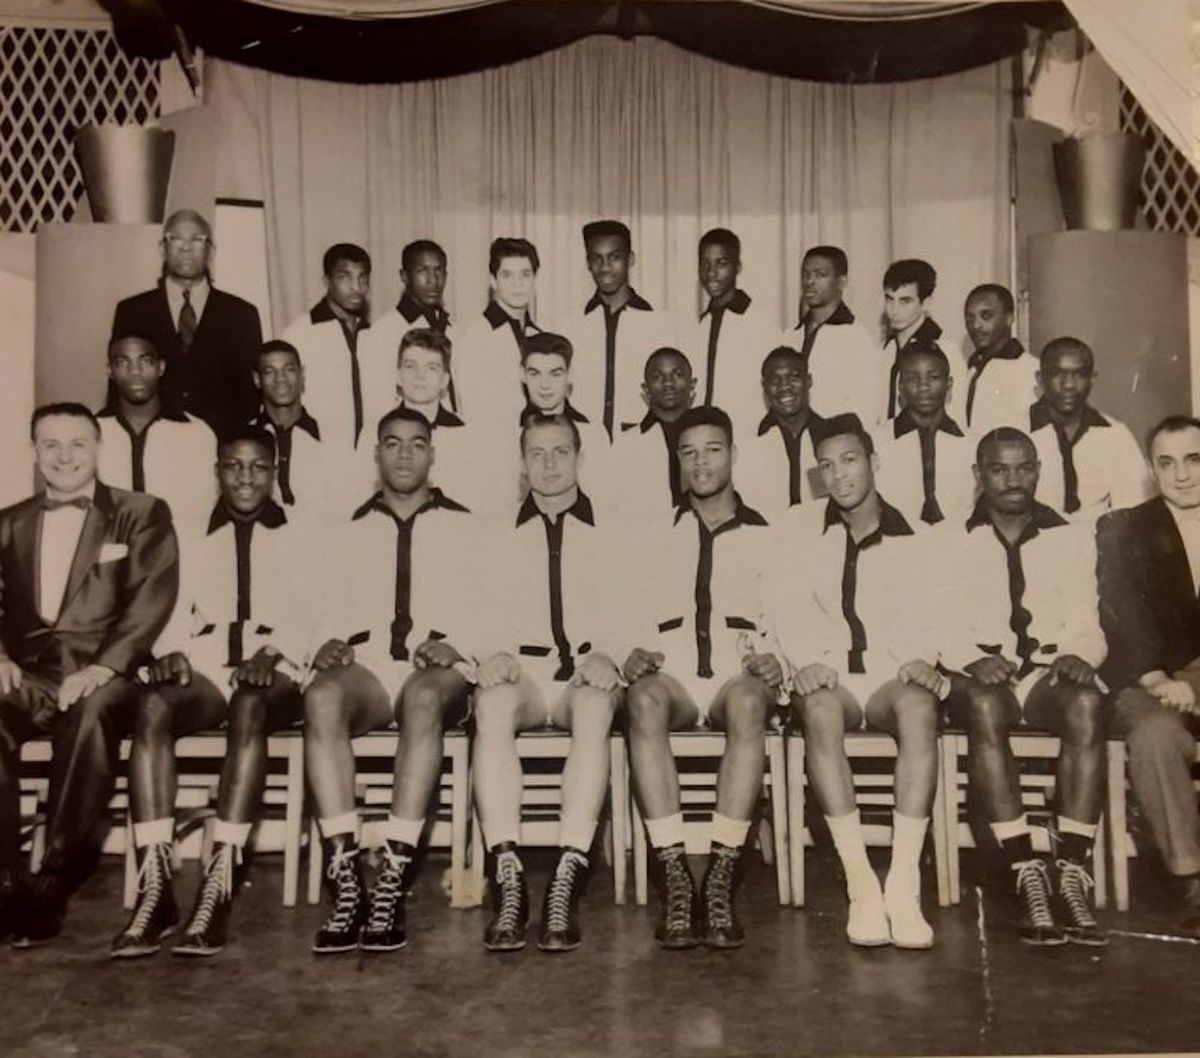 Al Jenkins (second fighter from the left in the front row) and other Golden Gloves boxers.